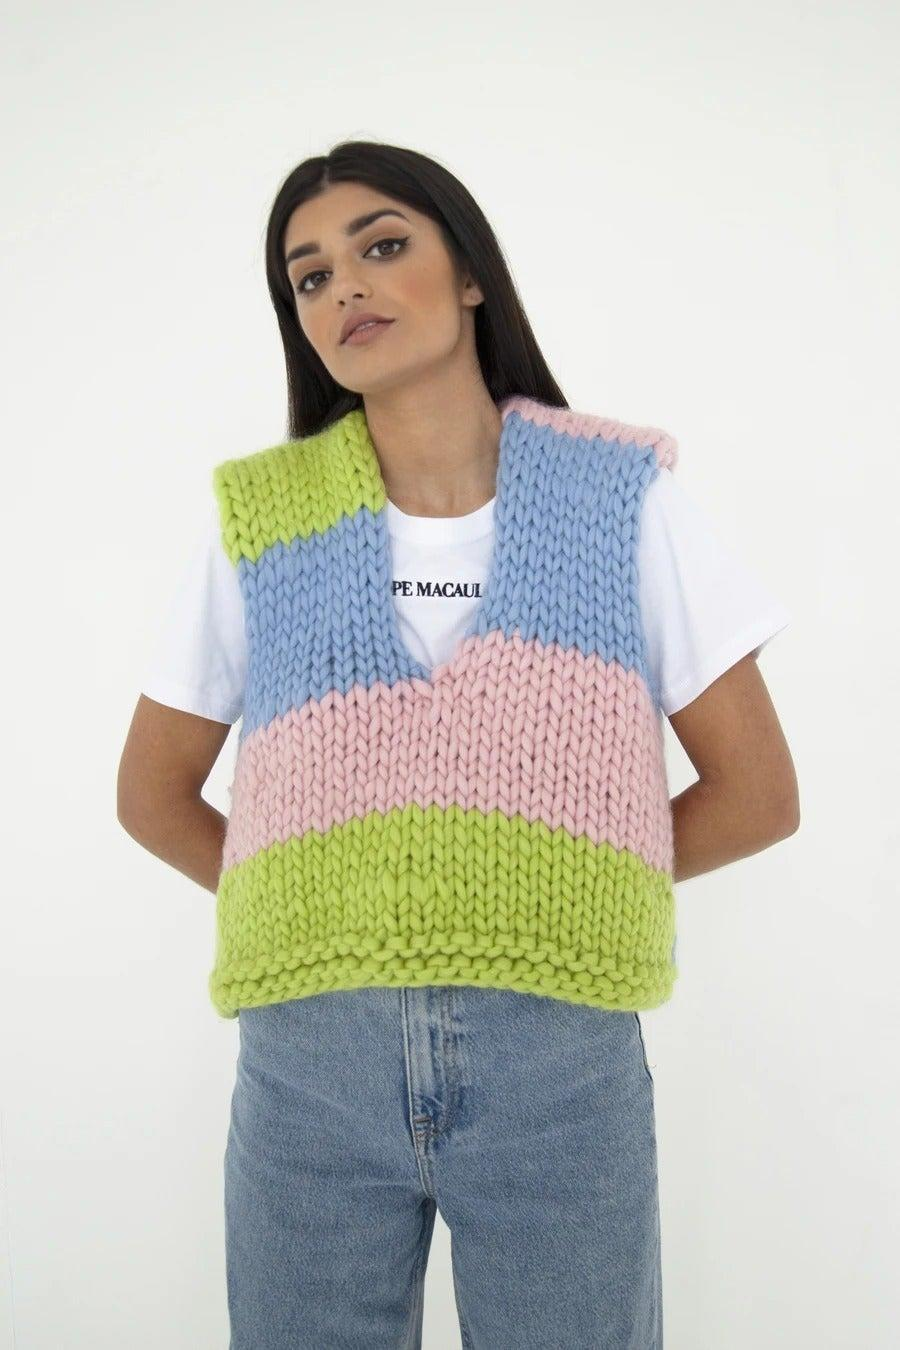 "<br><br><strong>Hope Macaulay</strong> Venus Chunky Knit Sweater Vest, $, available at <a href=""https://hopemacaulay.com/collections/knitwear/products/venus-chunky-knit-sweater-vest"" rel=""nofollow noopener"" target=""_blank"" data-ylk=""slk:Hope Macaulay"" class=""link rapid-noclick-resp"">Hope Macaulay</a>"